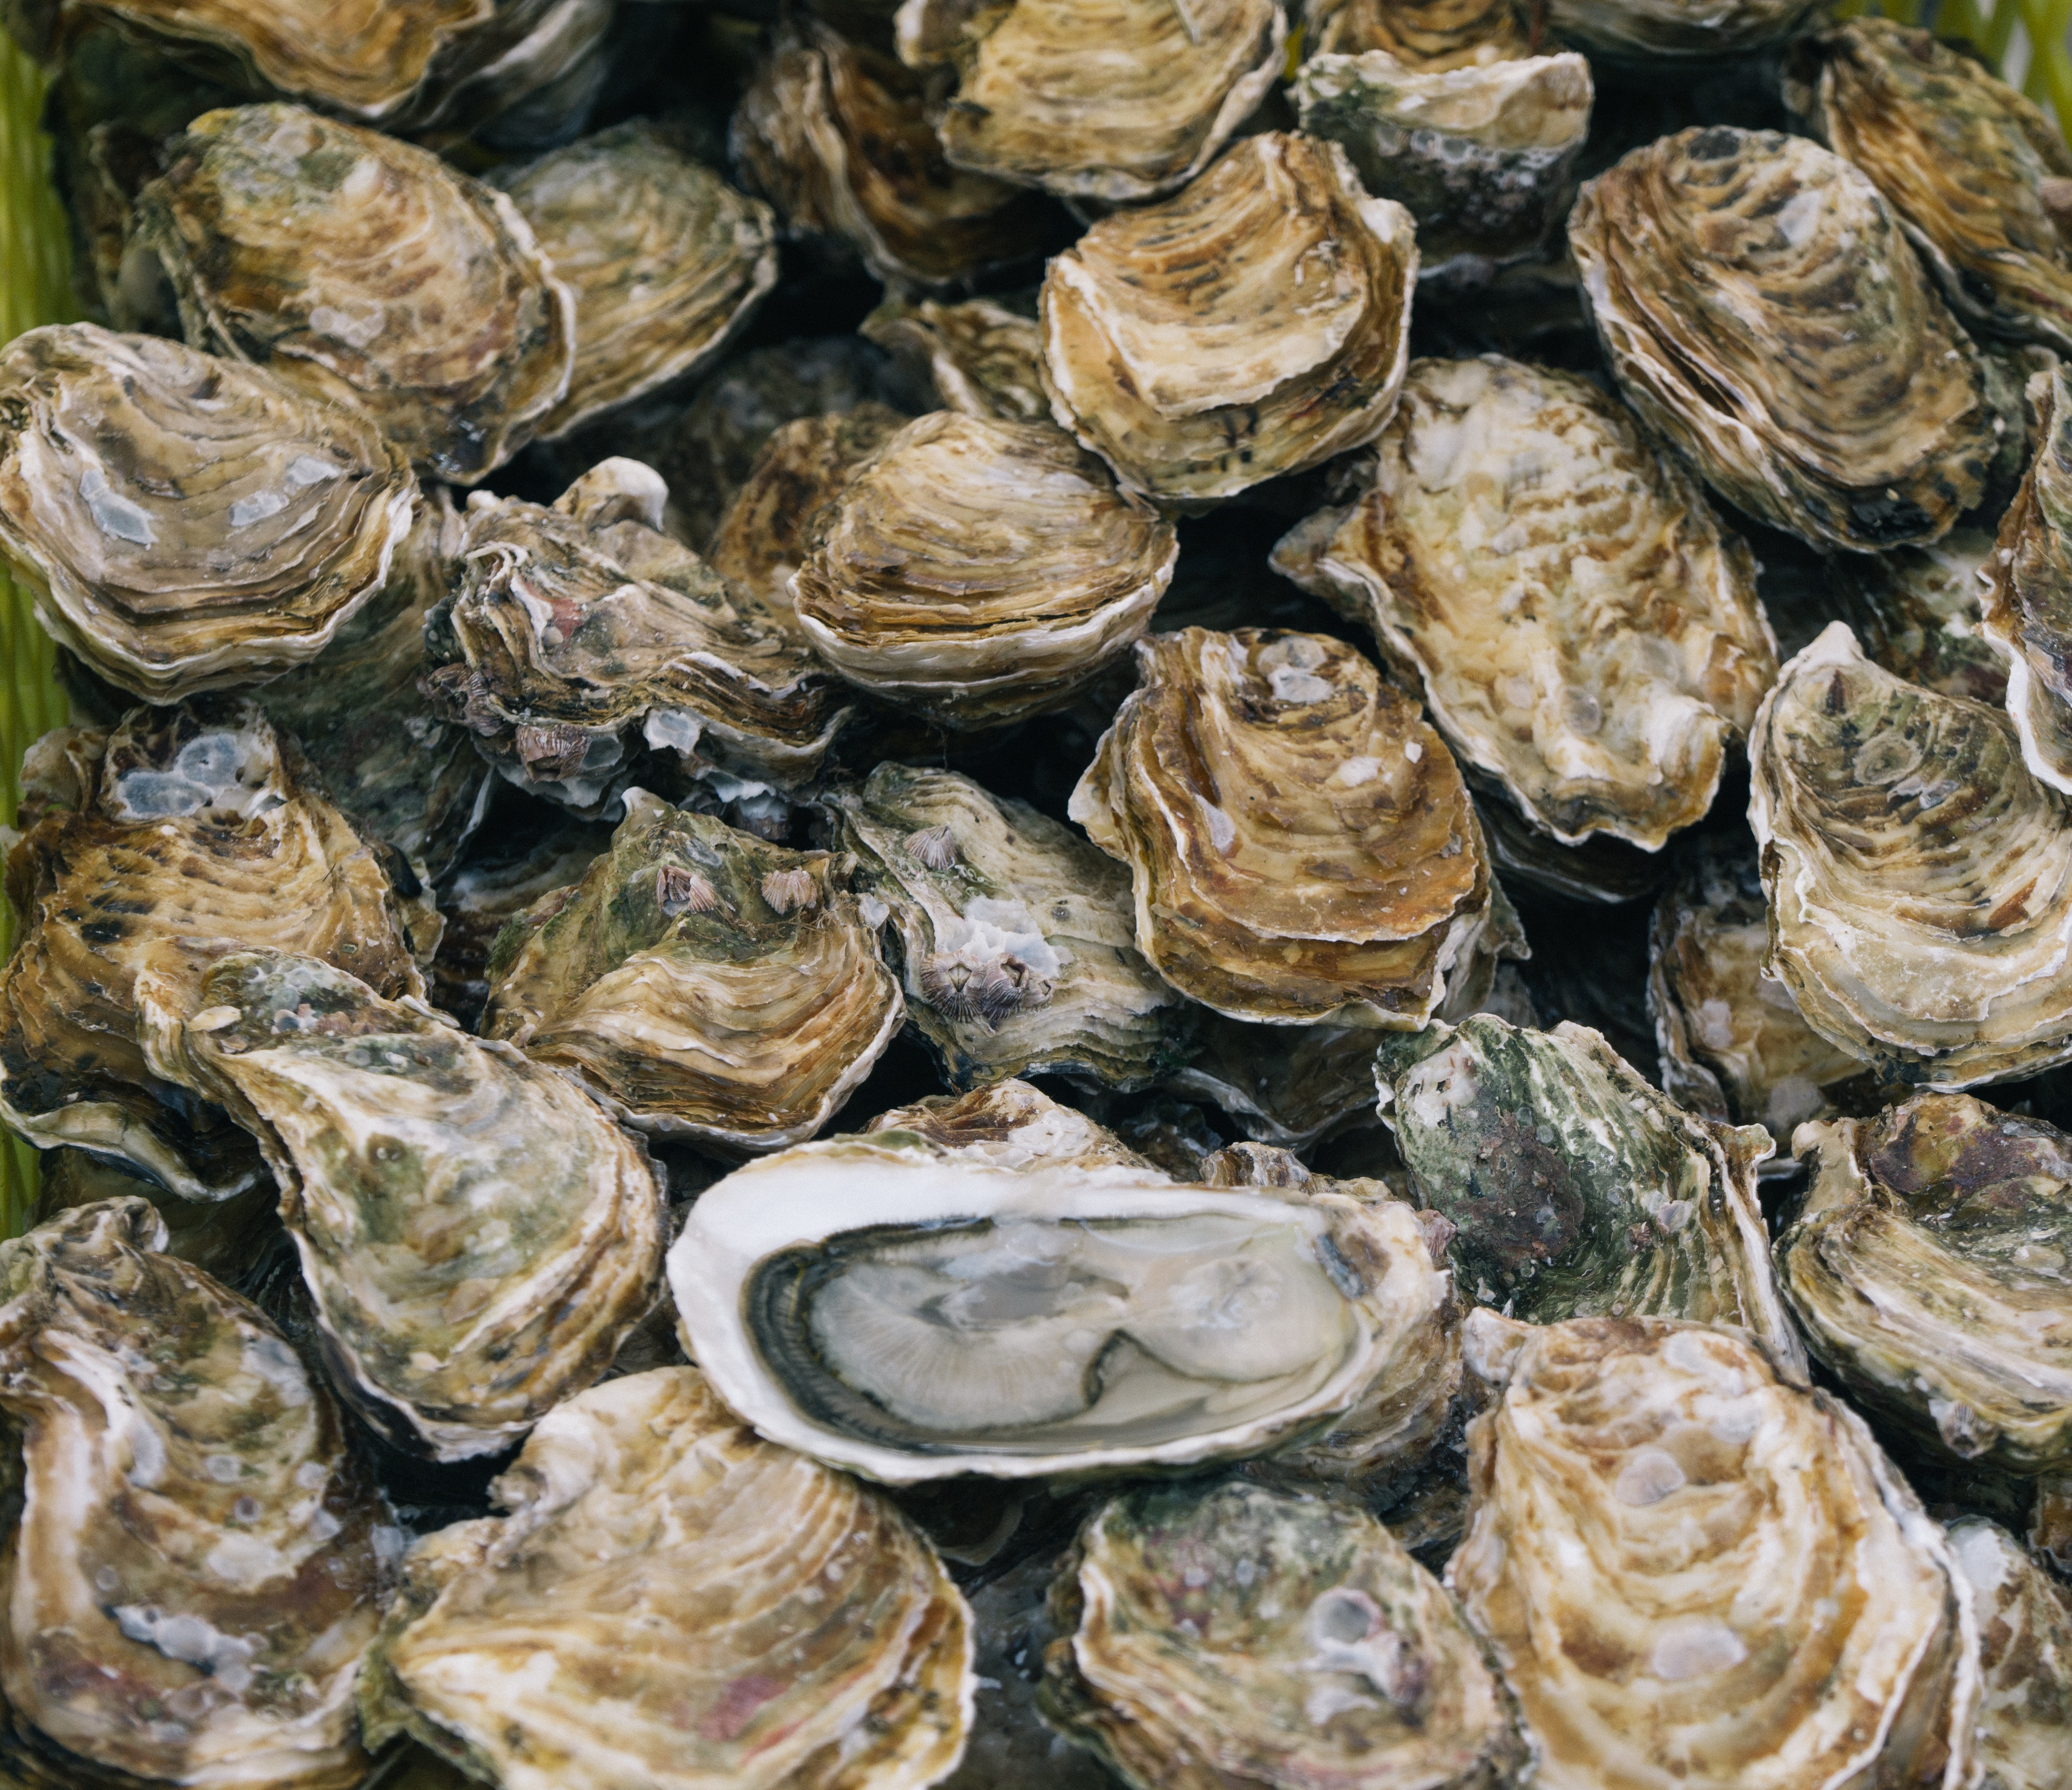 Homeowners File Land Ownership Lawsuit Over Oyster Farm Plan